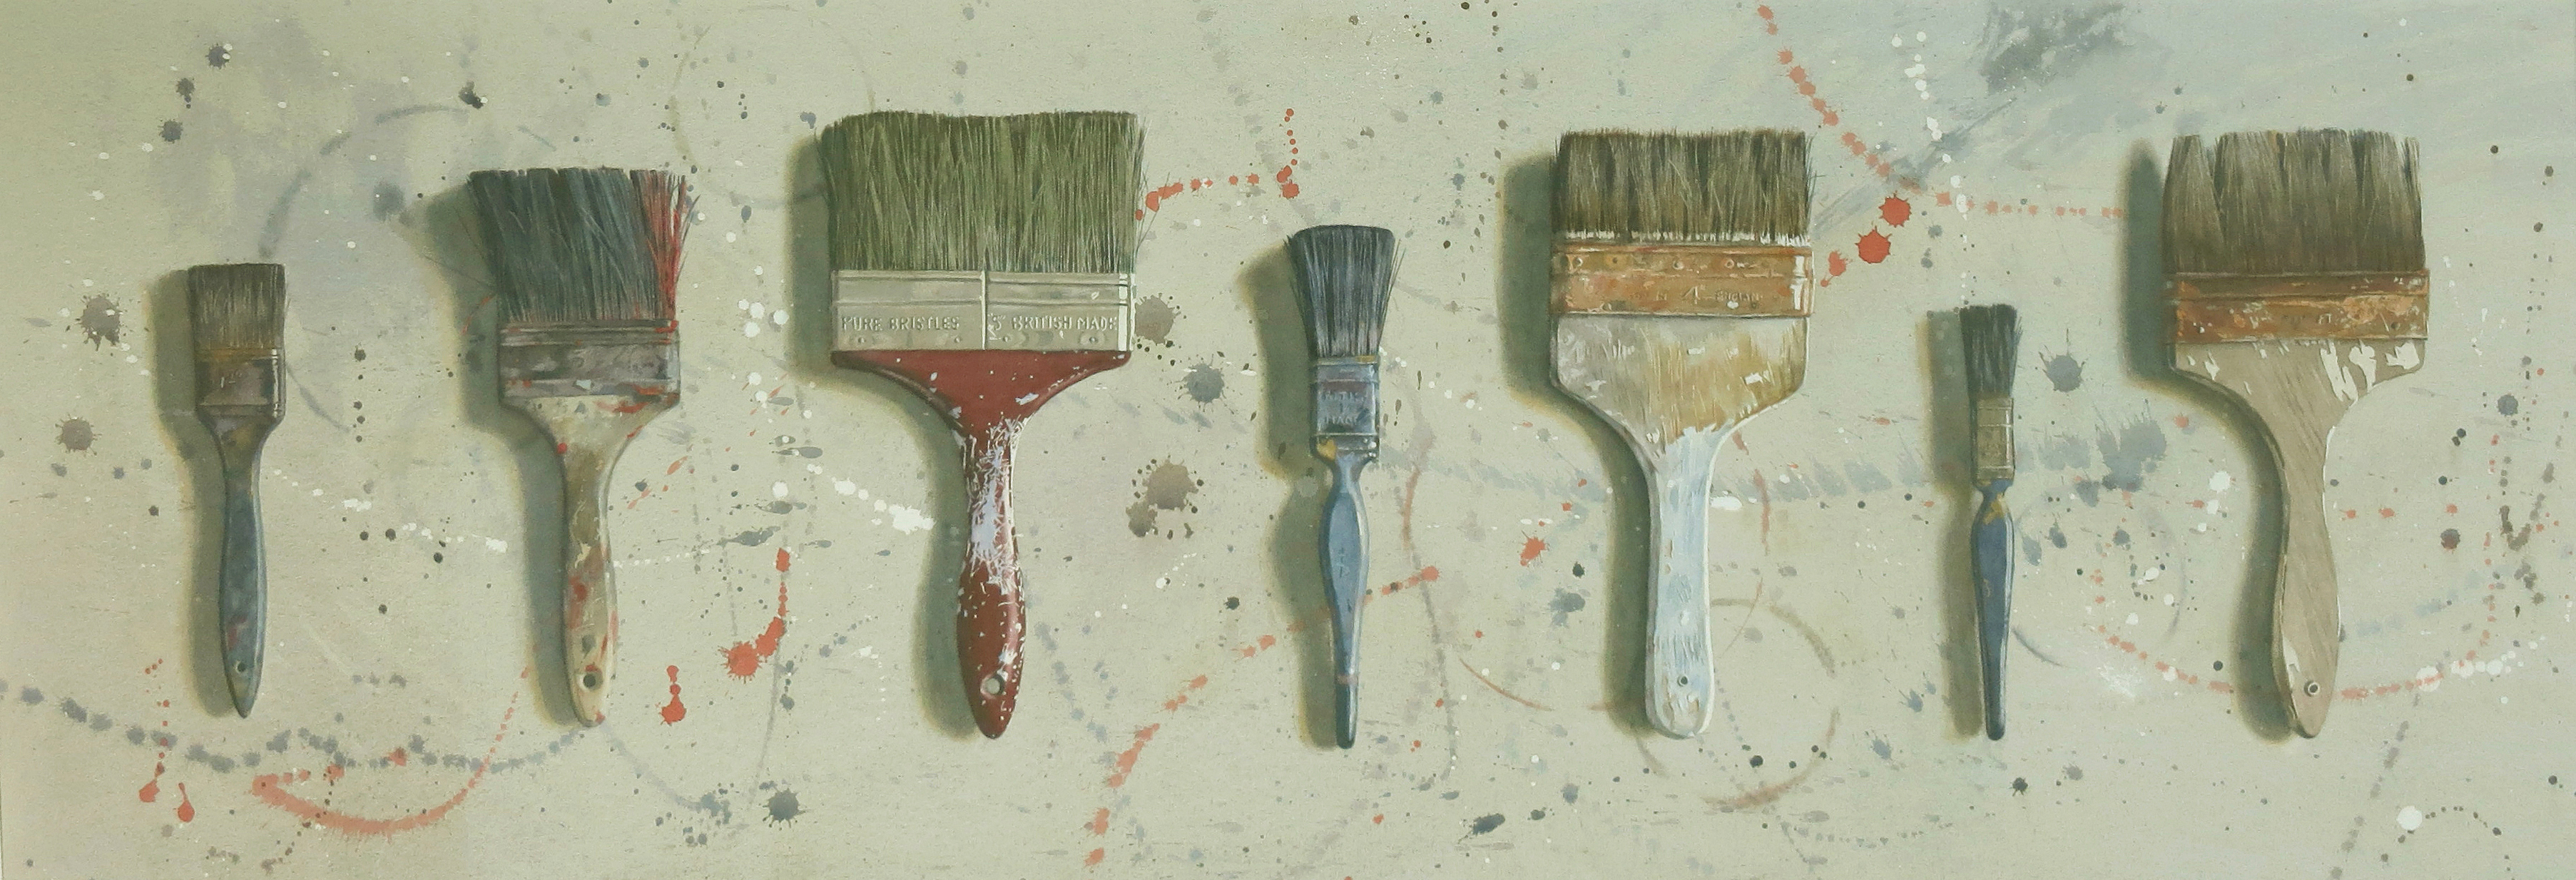 Seven brushes 40 x 109cm Watercolour by Lillias August ©